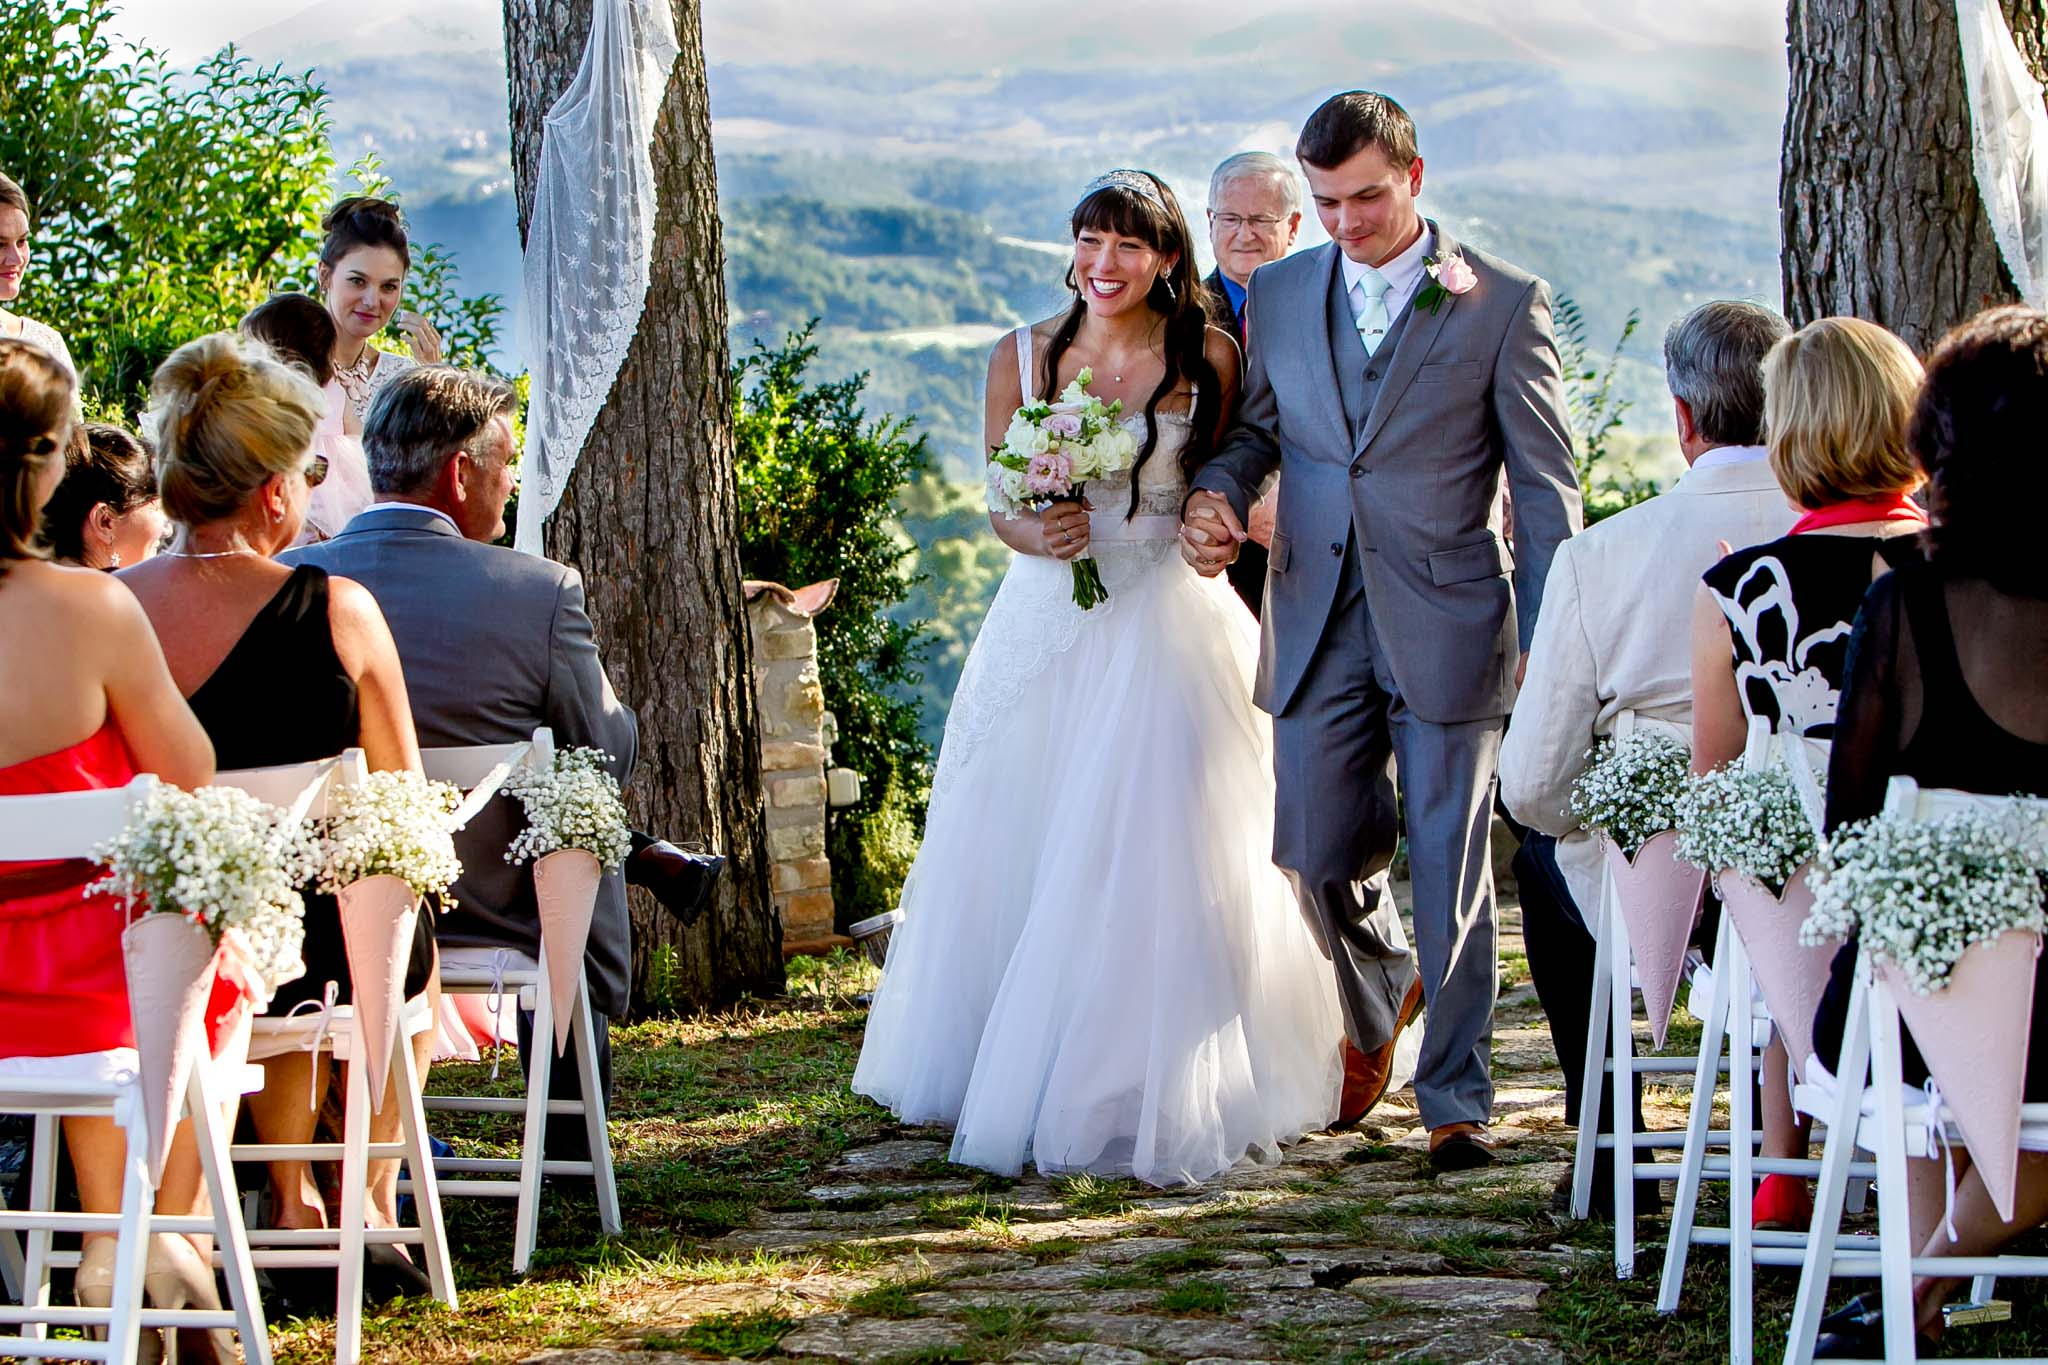 Bride and Groom exiting ceremony at Villa Tre Grazie in Umbria Italy near Todi